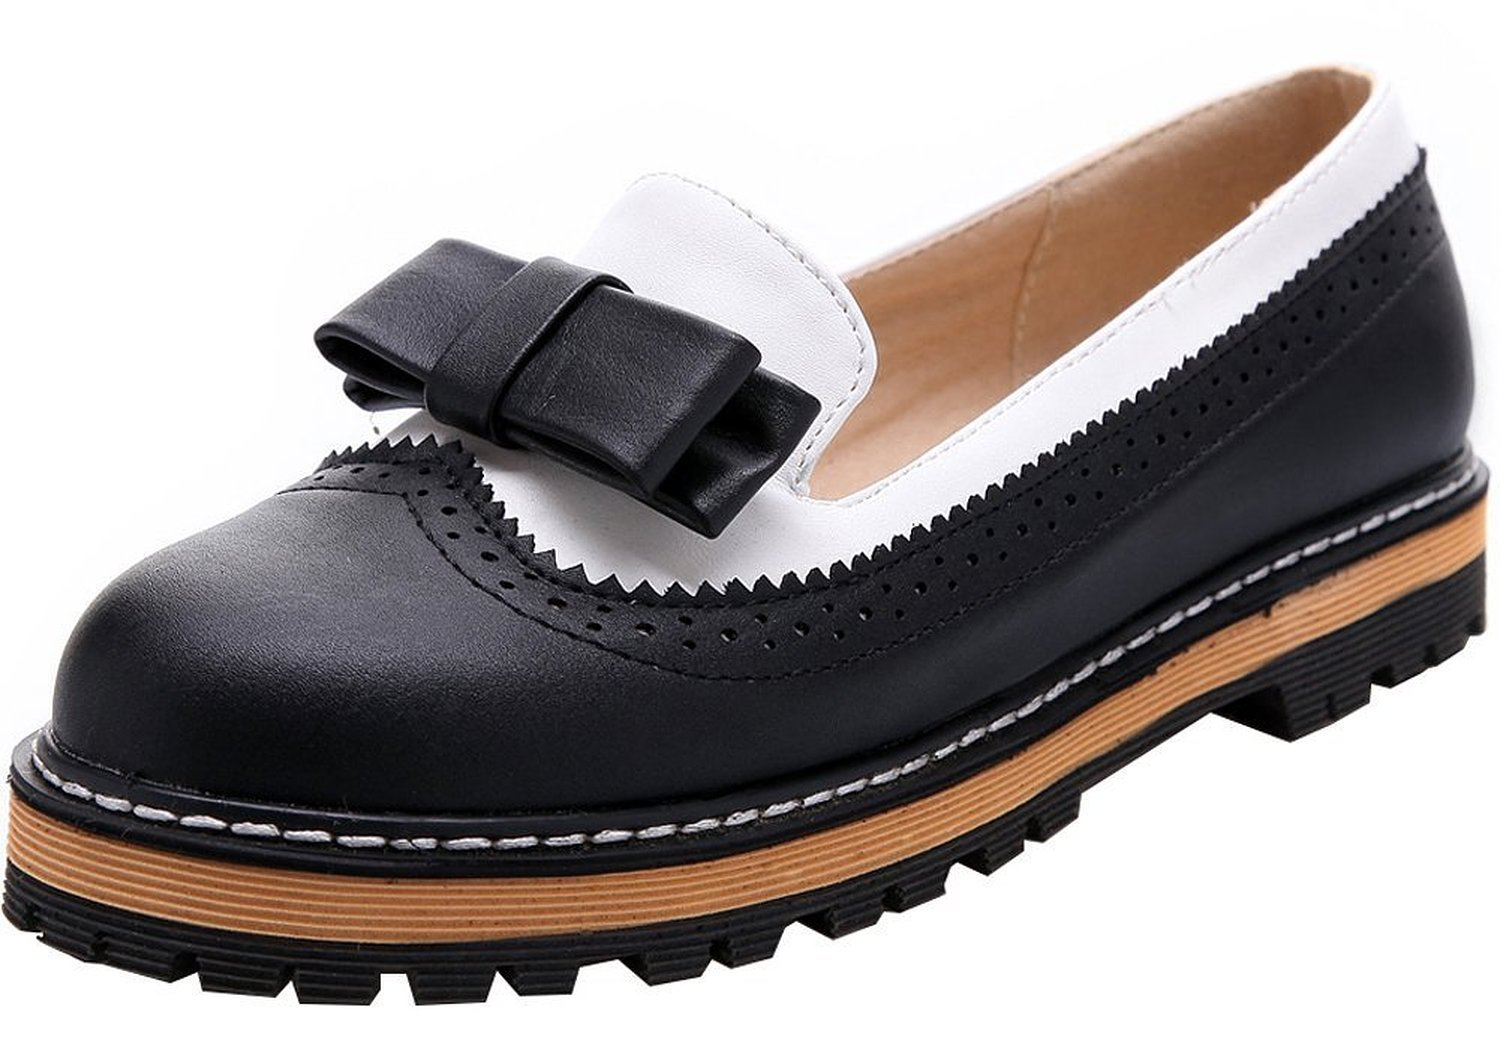 Women's Sweet Cute Leather Round Toe Platform Bow Black Oxfords Shoes 8 B (M) US